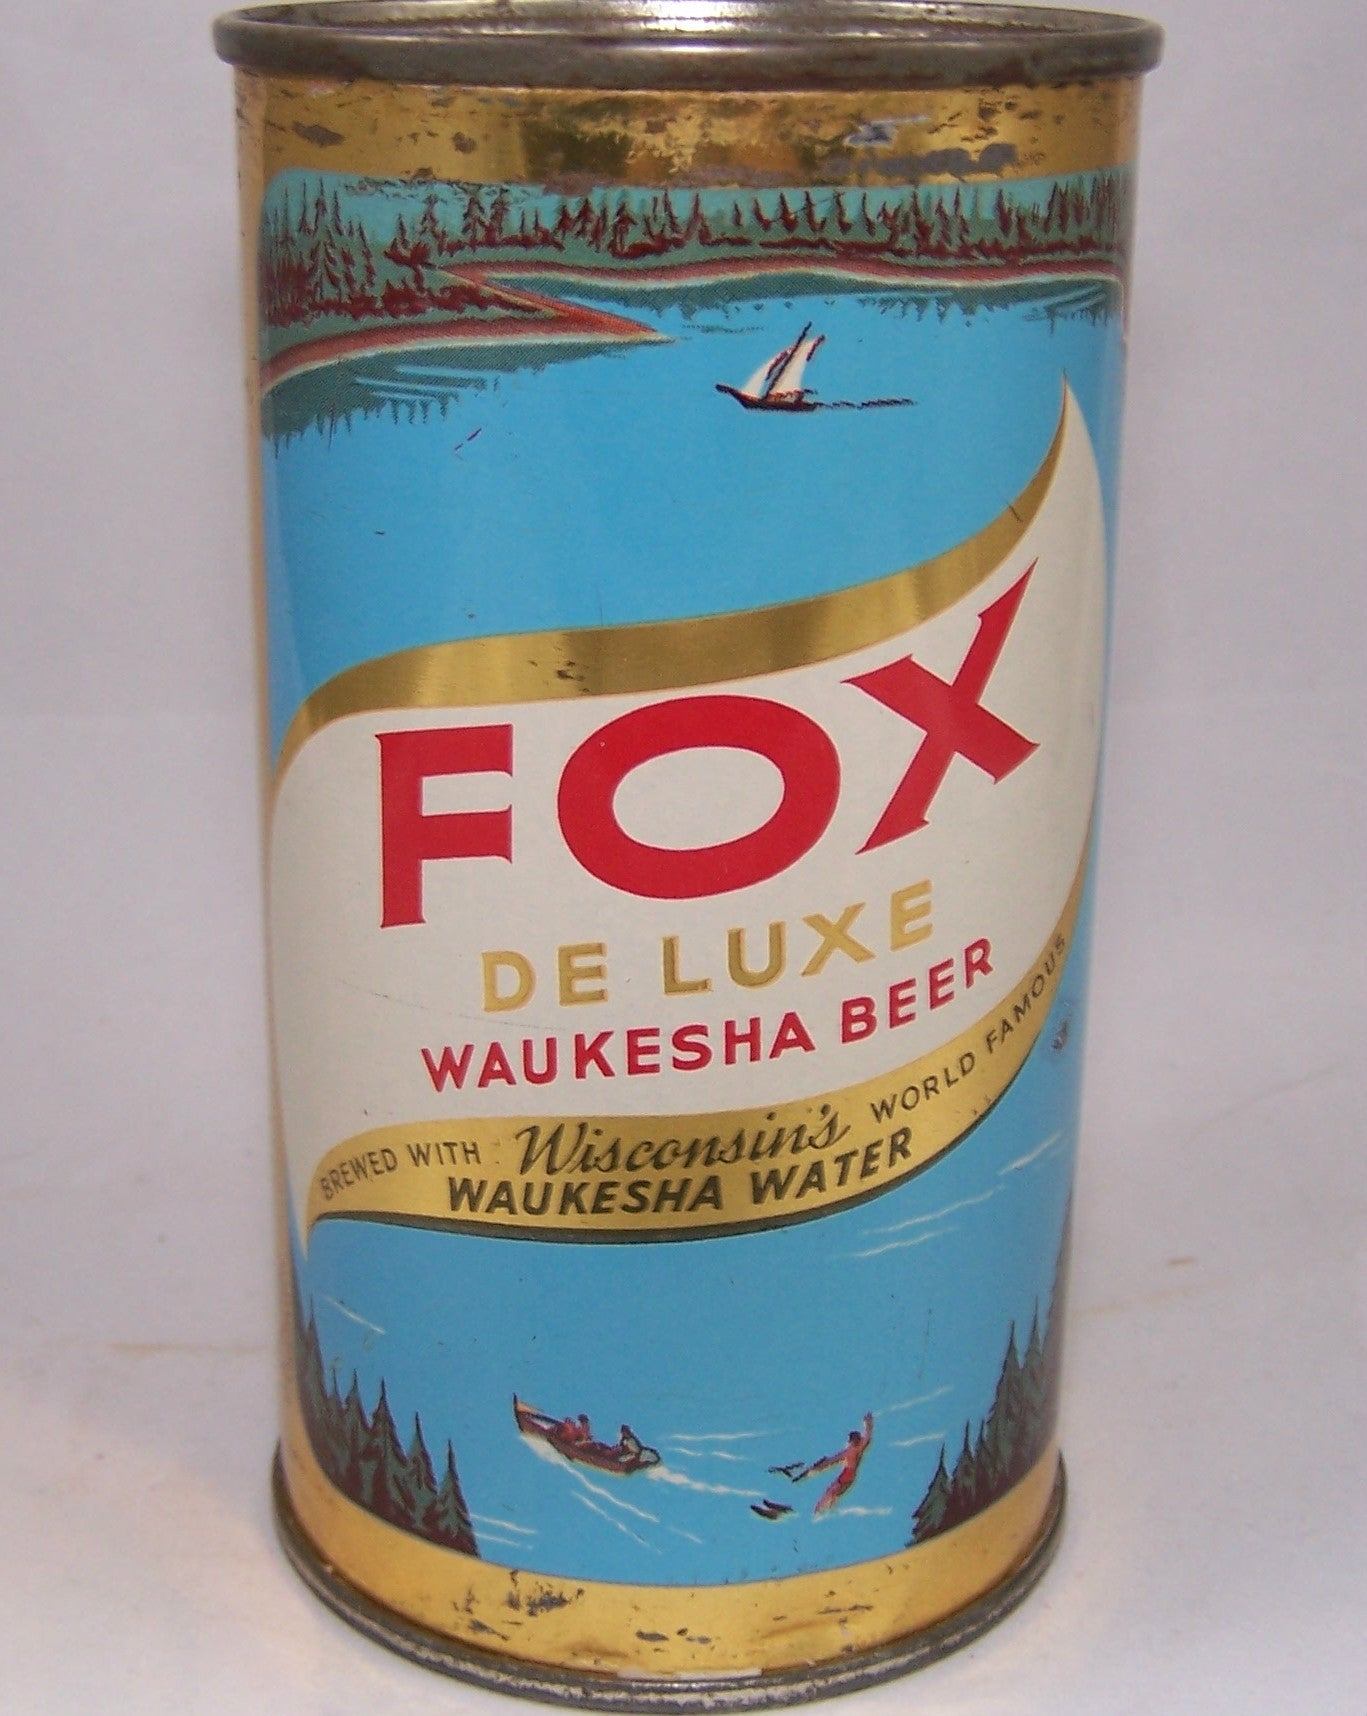 Fox Deluxe Waukesha Beer (Brown writing) USBC 65-27, Grade 1-